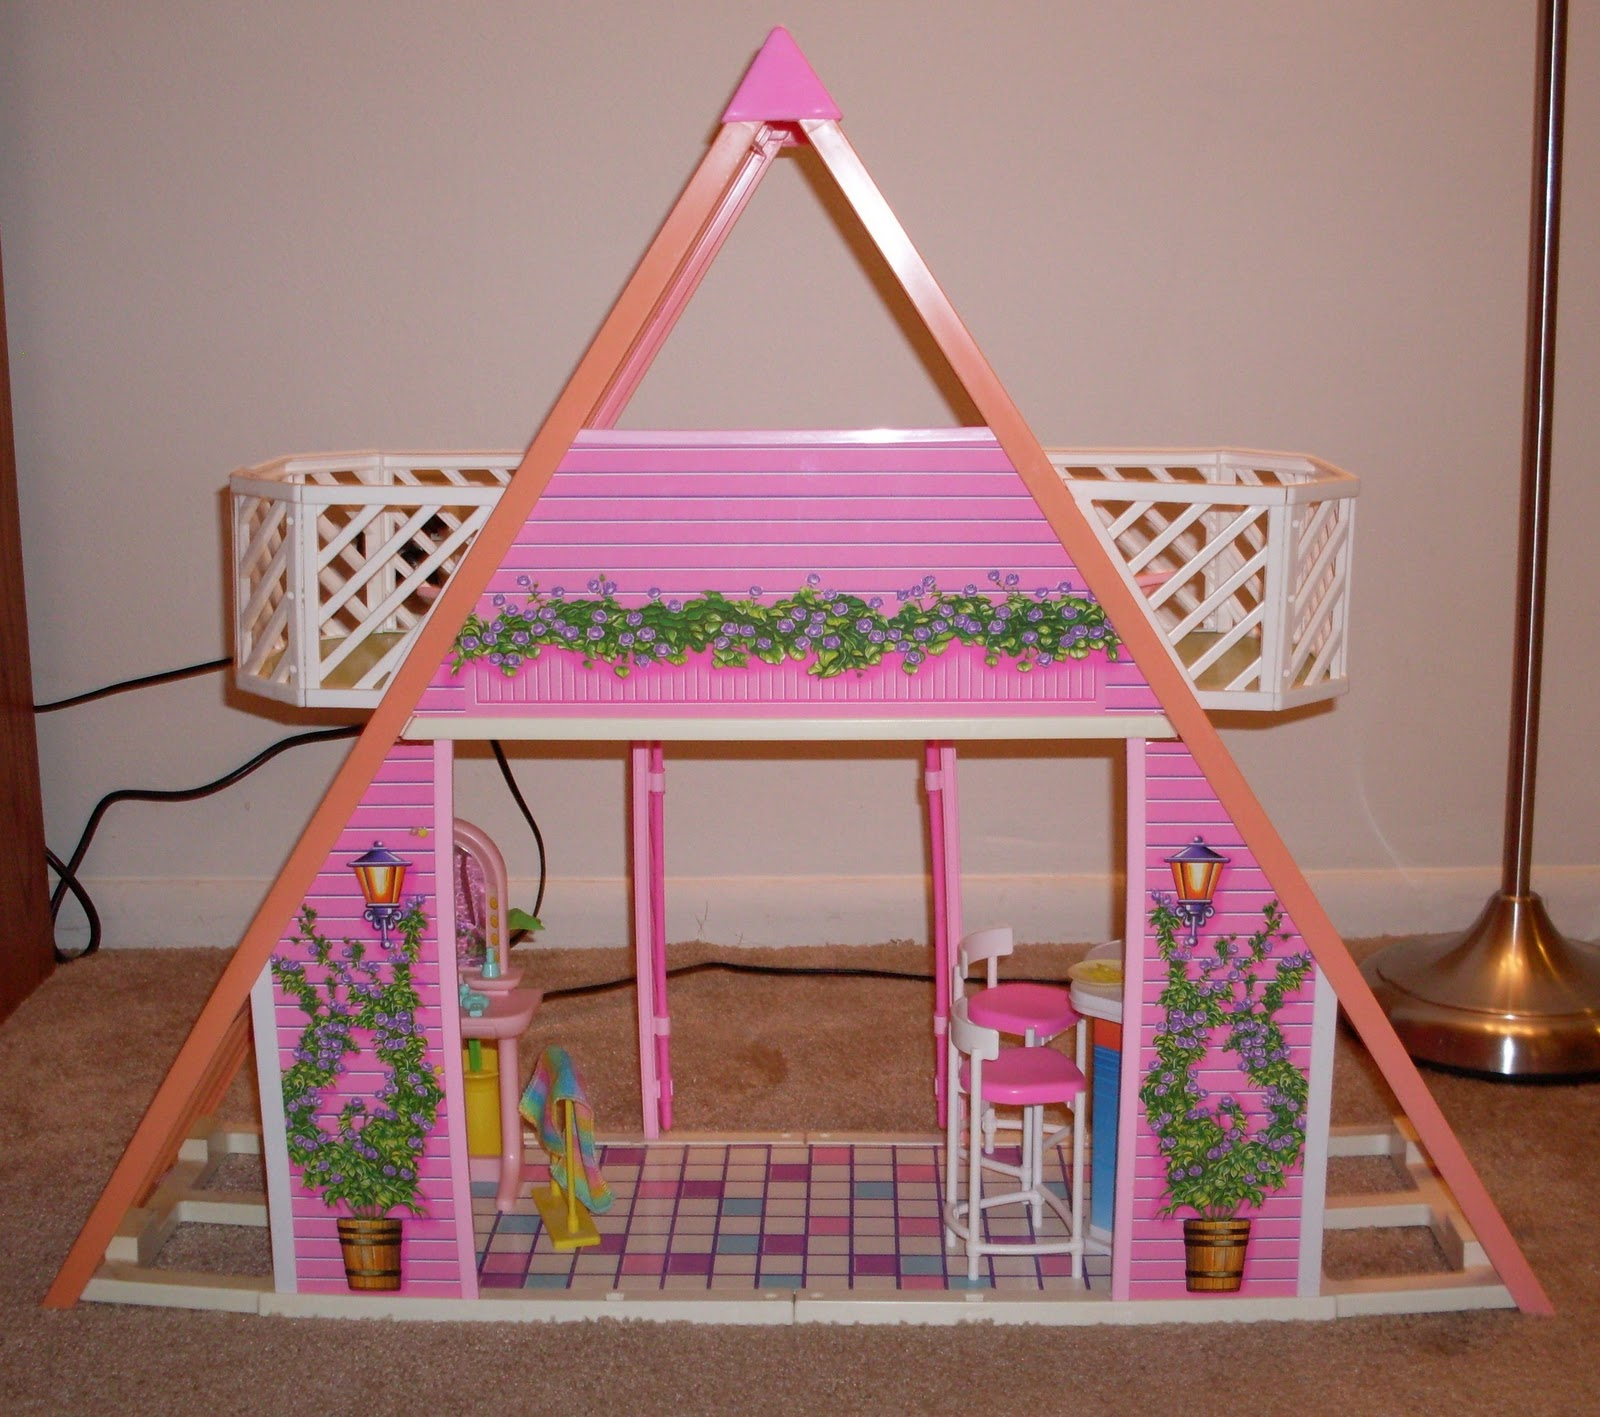 barbie dream house assembly instructions